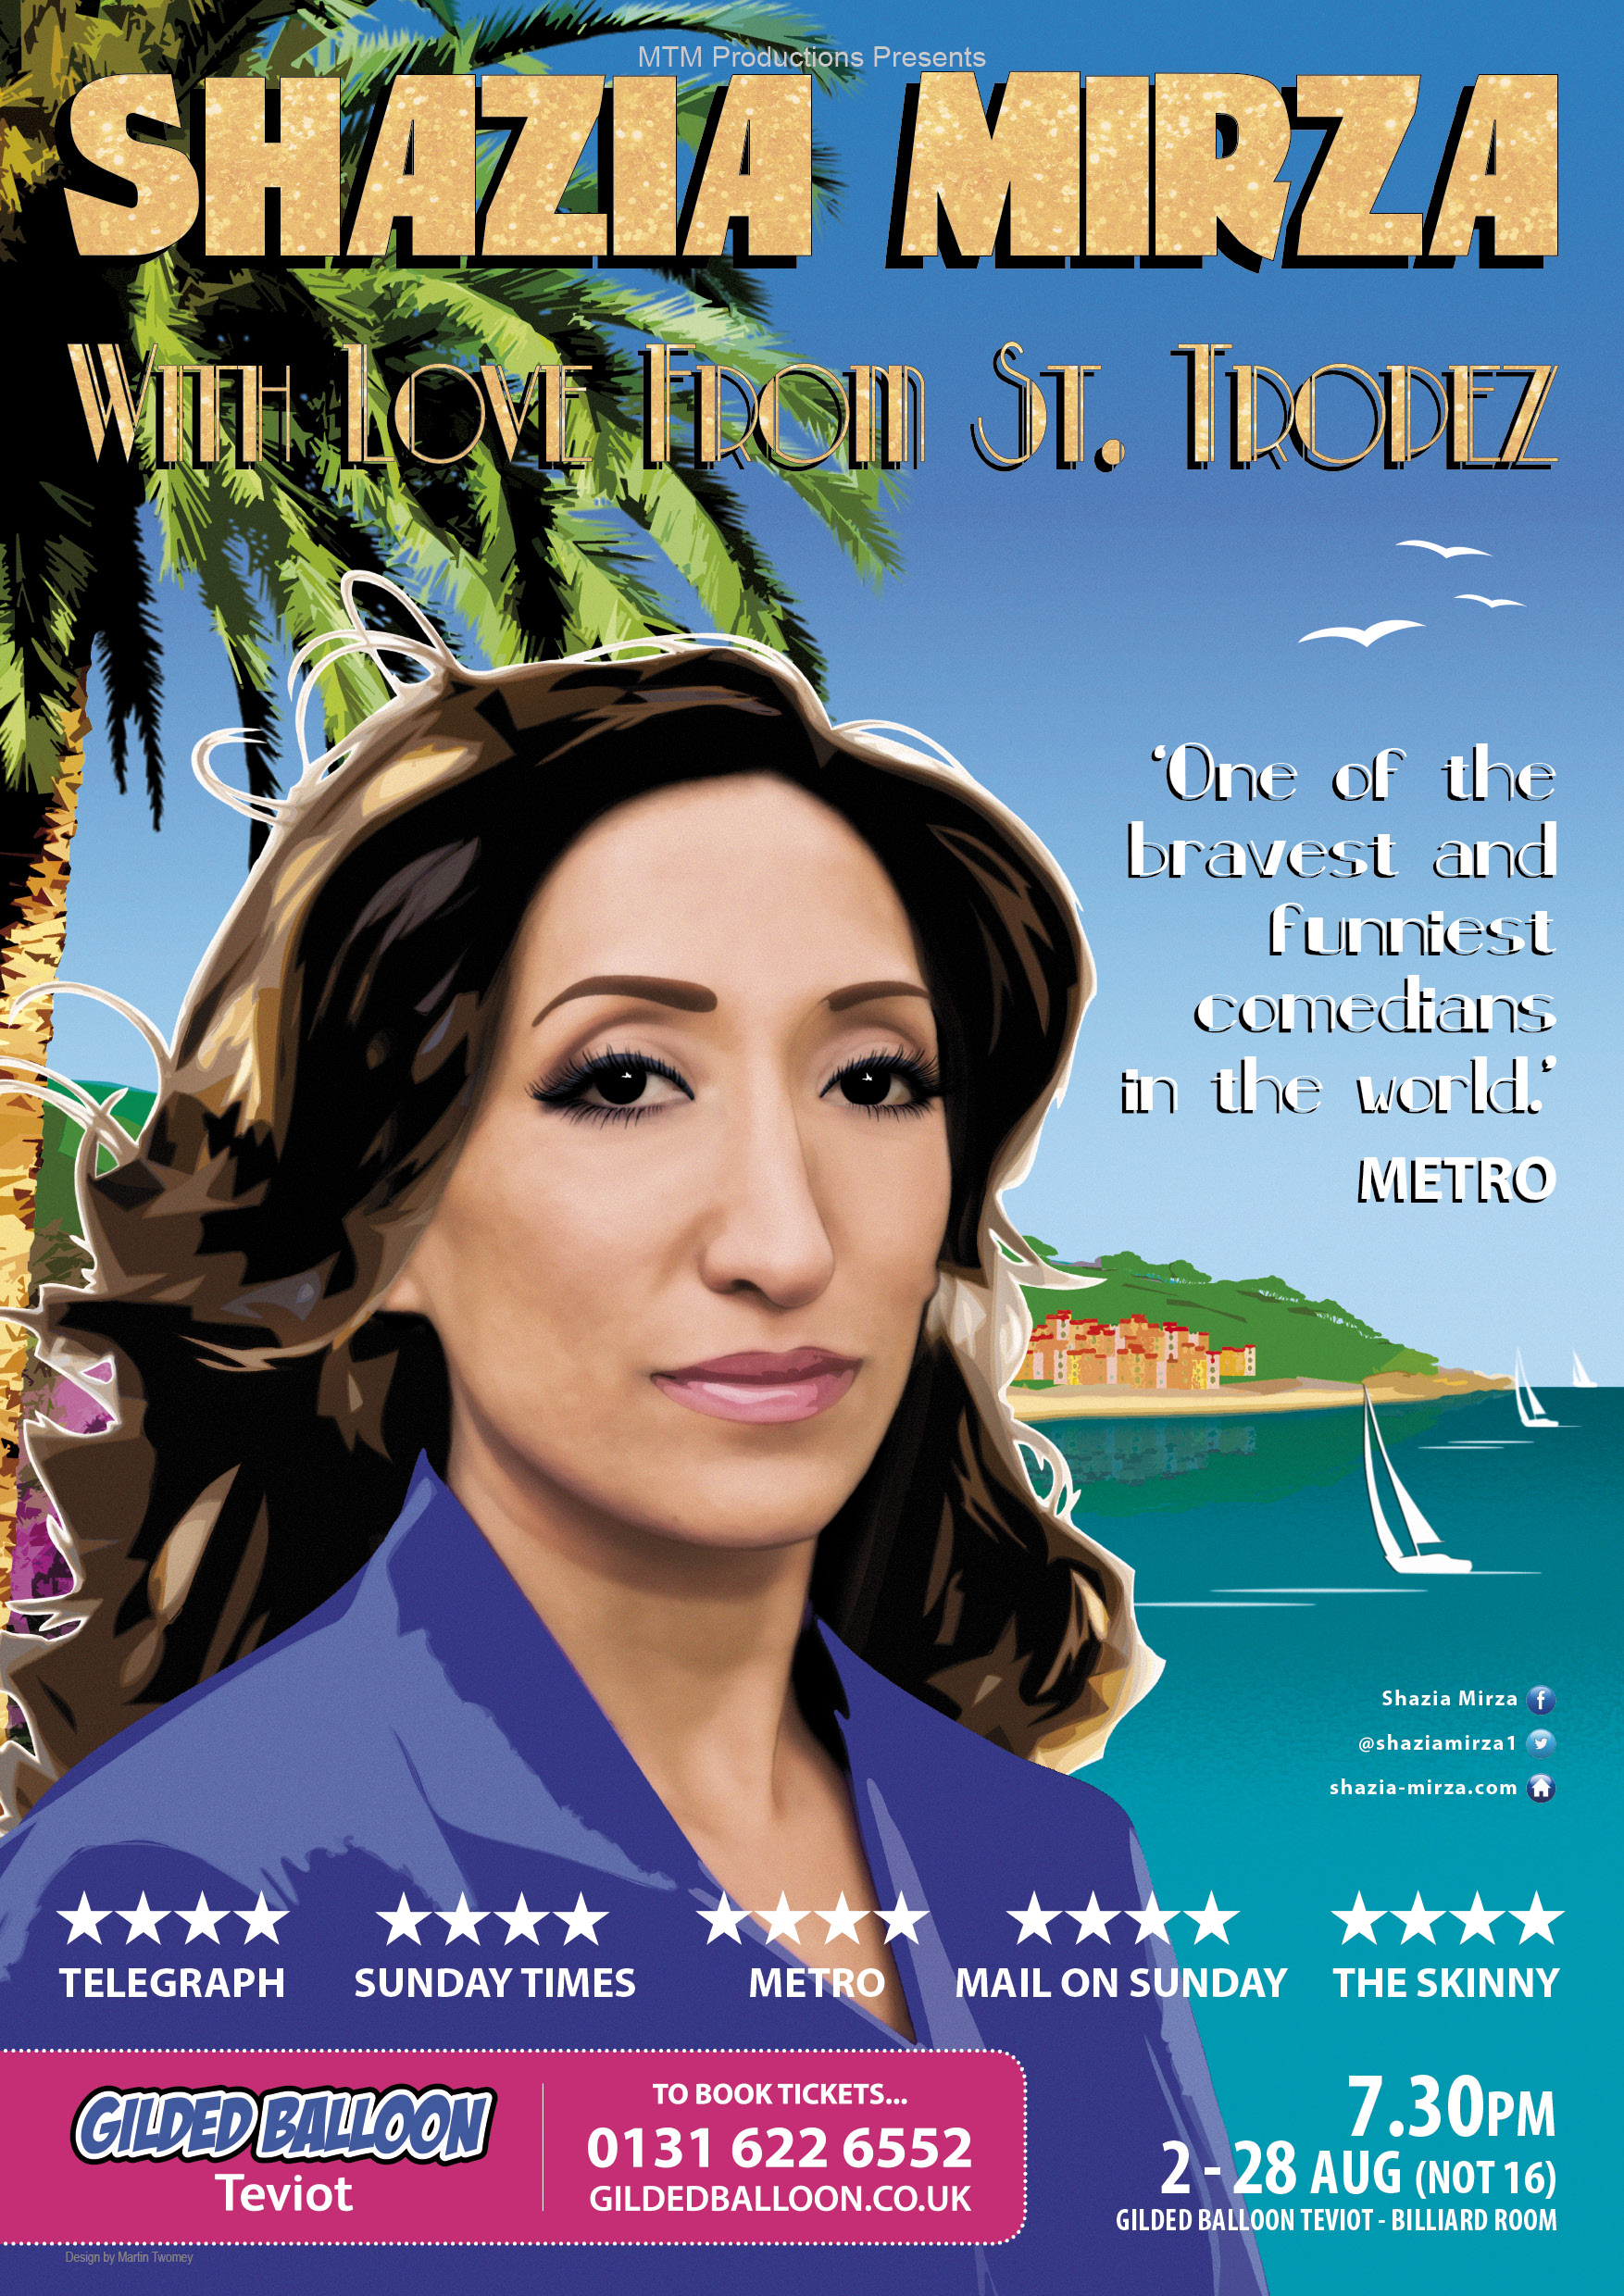 Shazia Mirza - With Love from St. Tropez